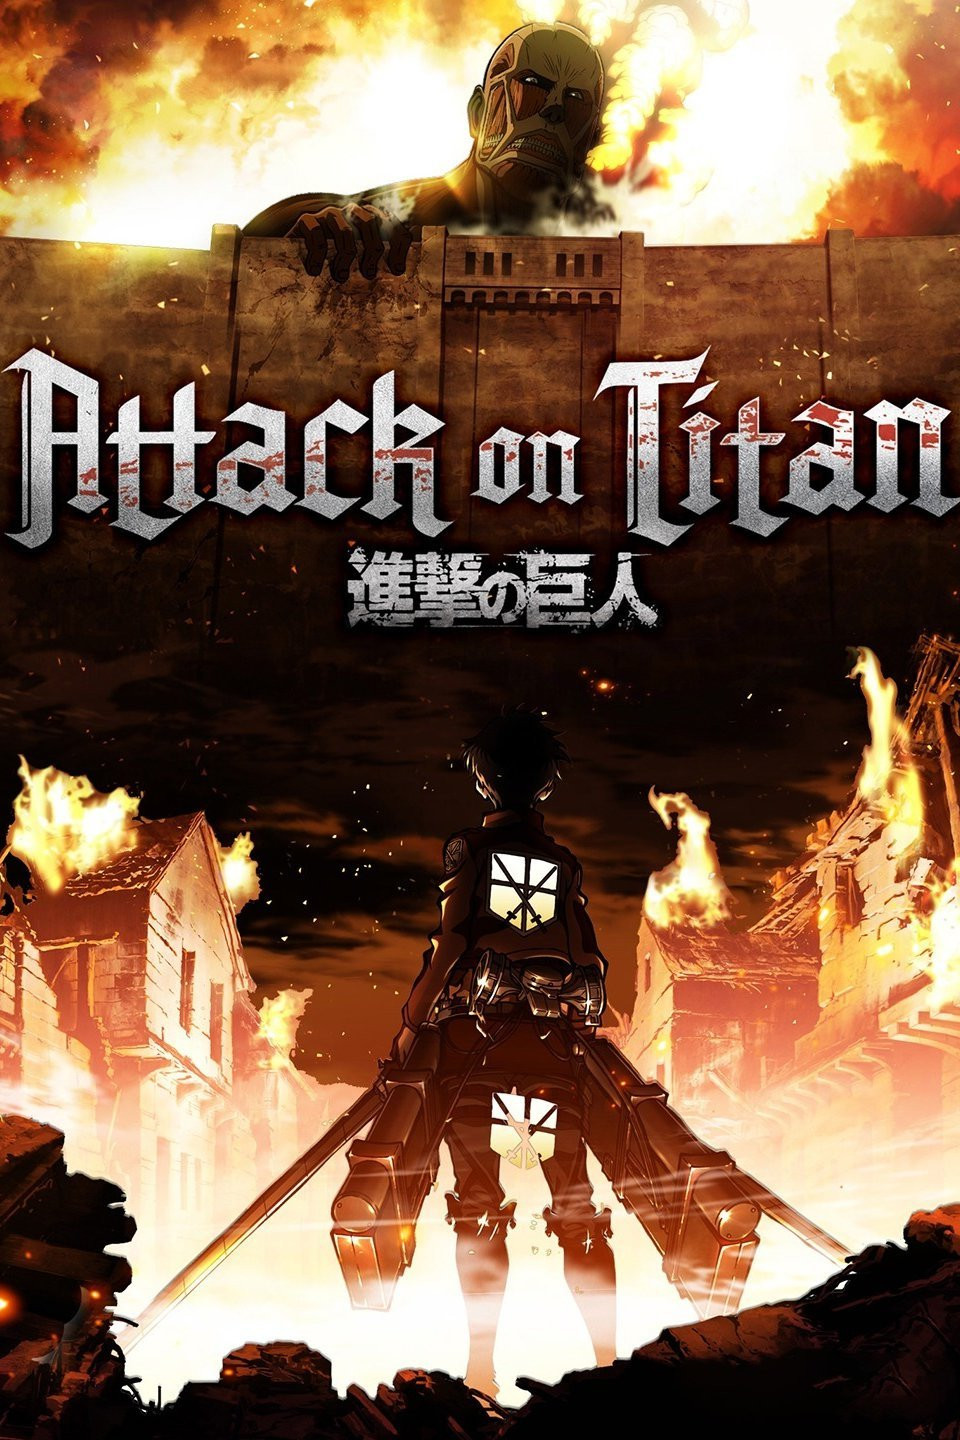 Attack on Titan poster not available